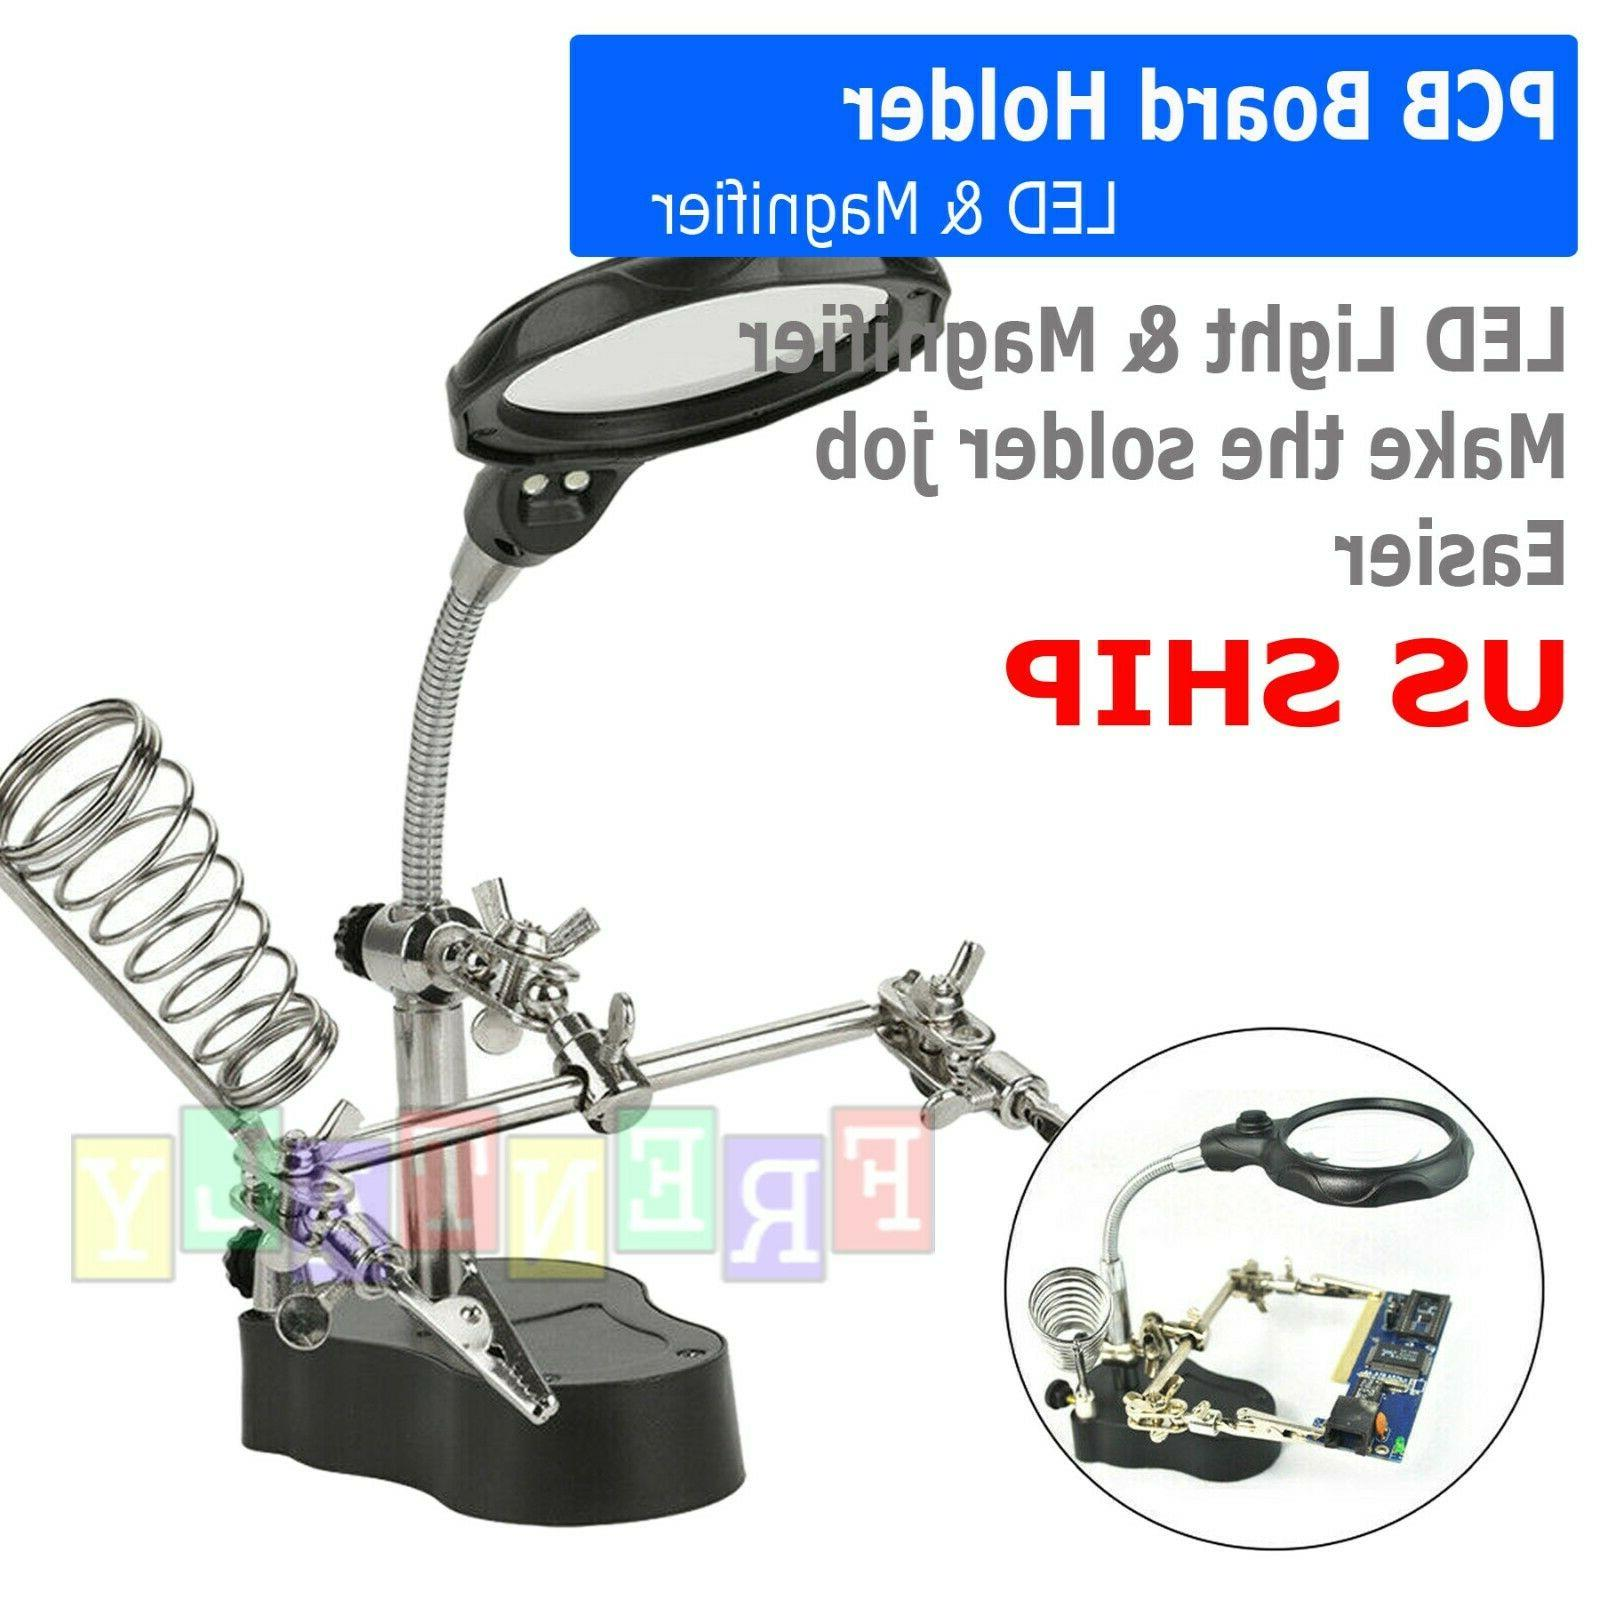 helping hand clamp led magnifying glass soldering